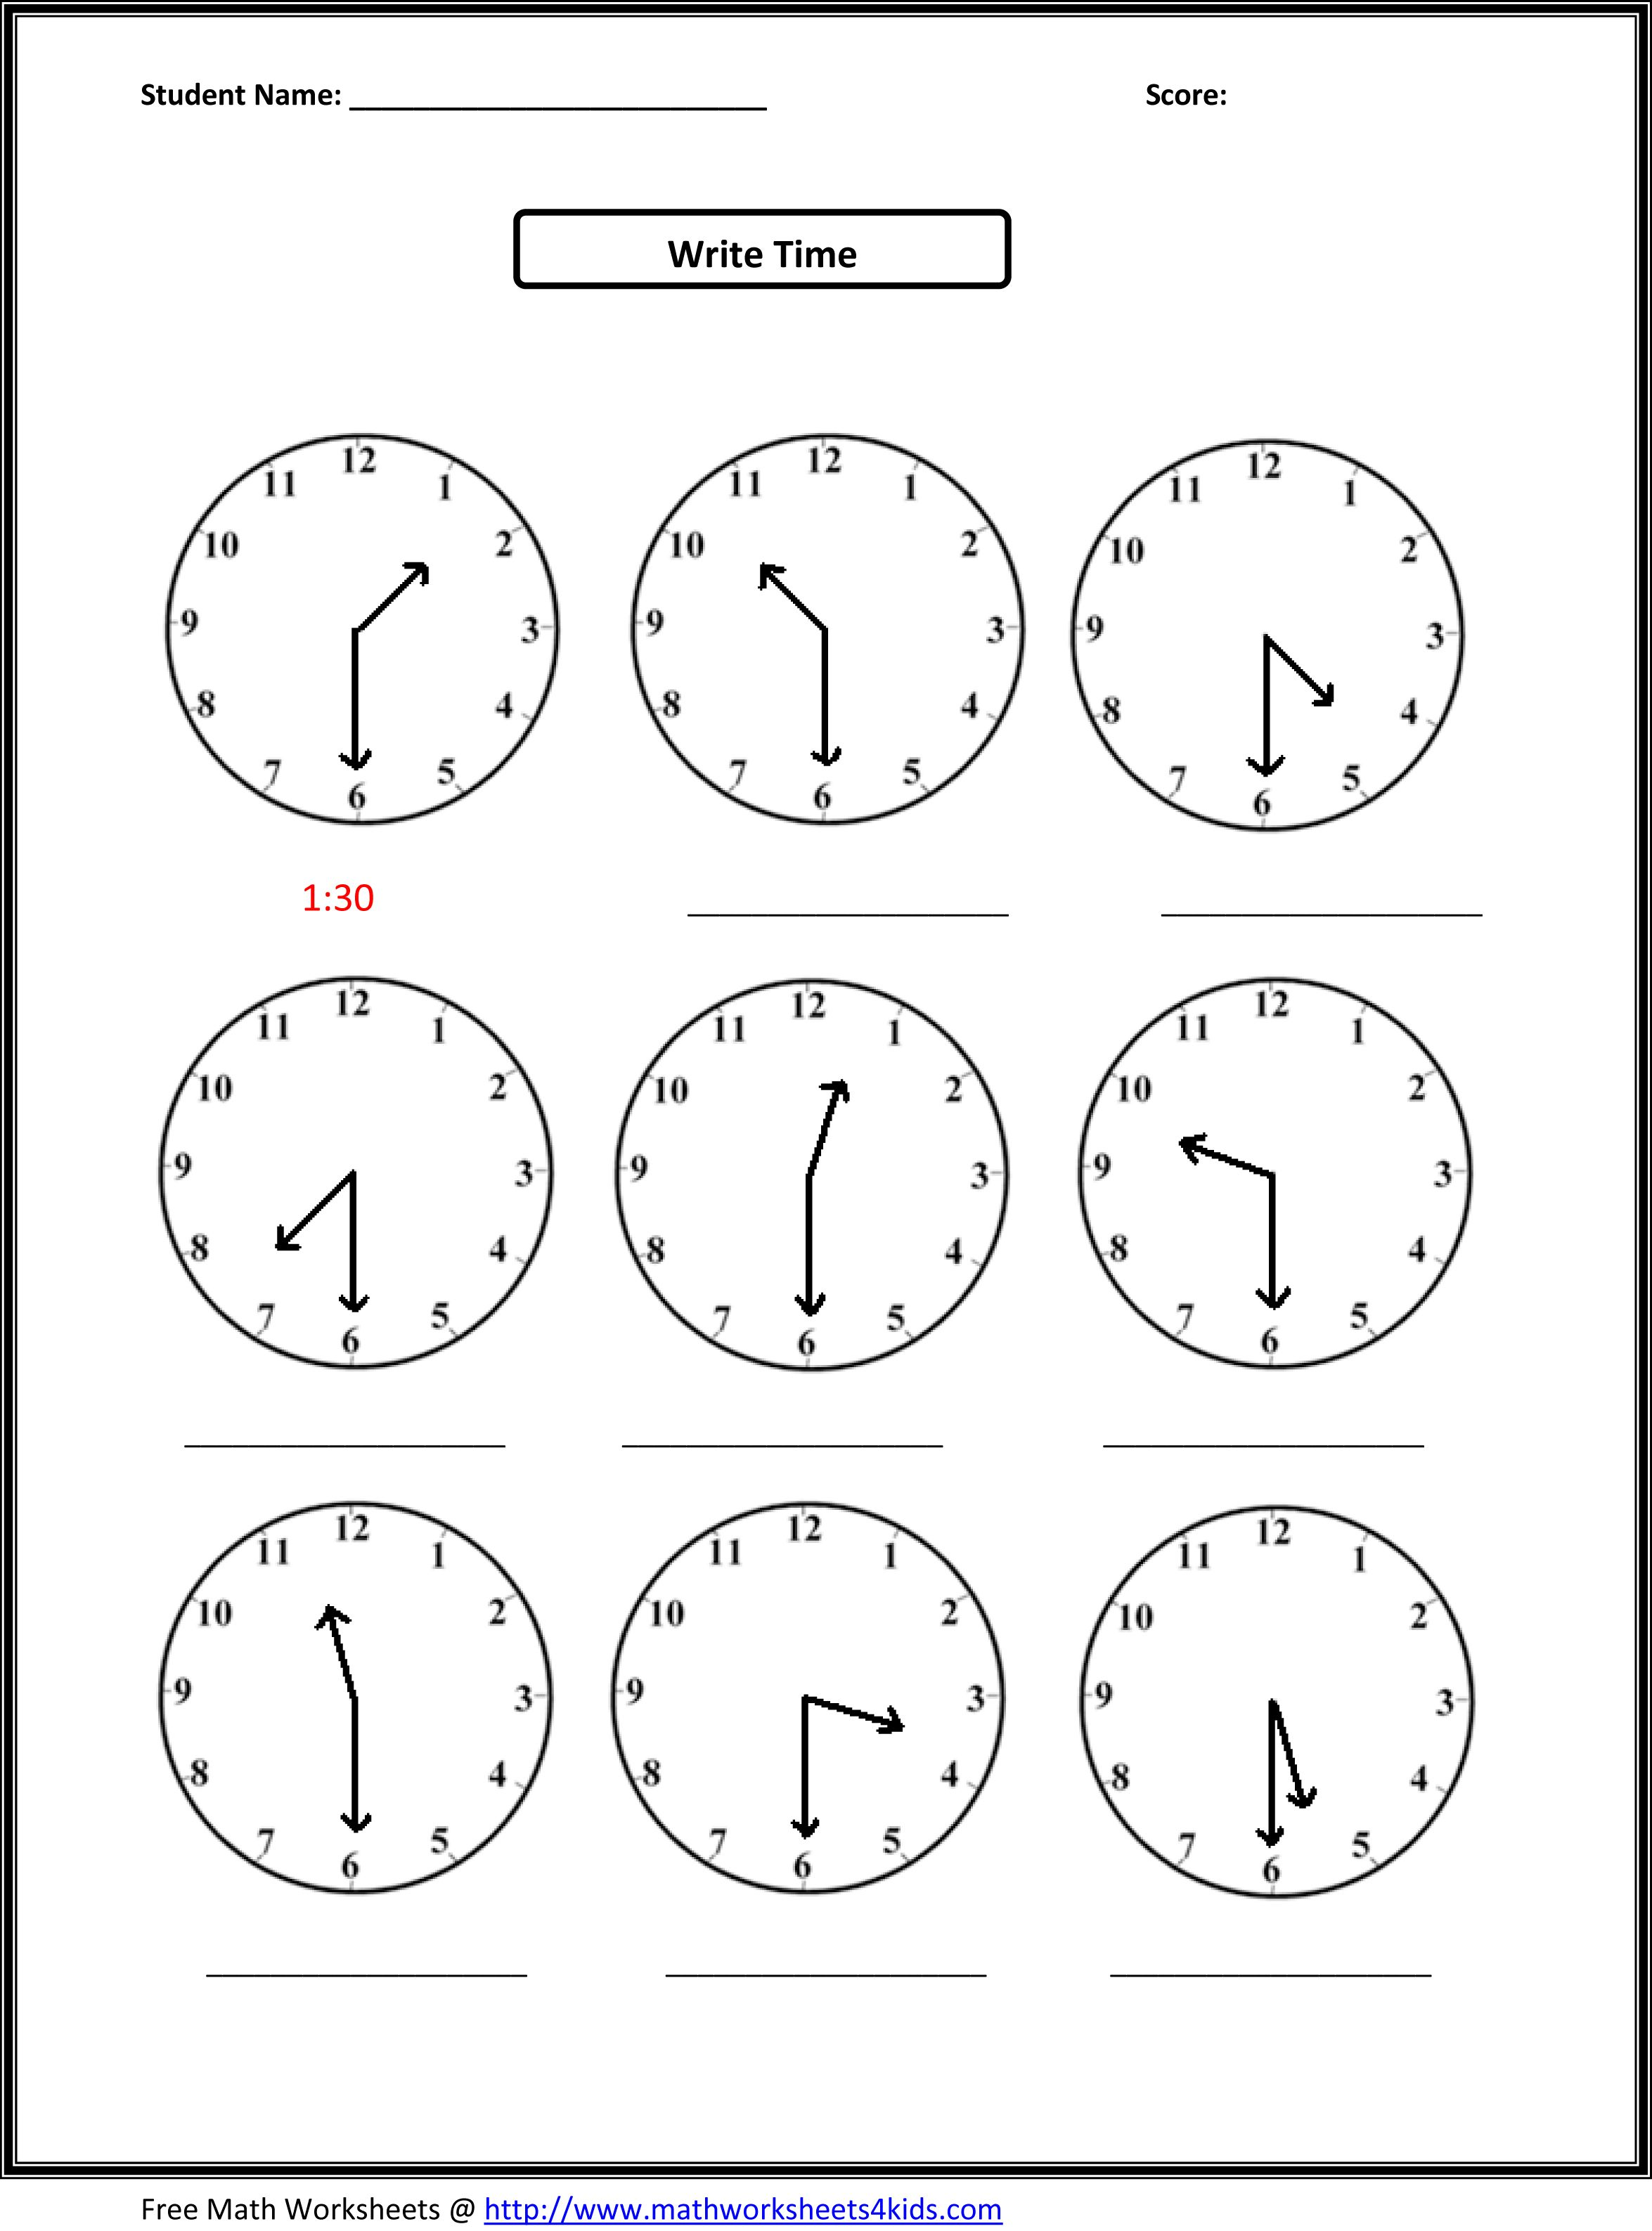 Proatmealus  Stunning Worksheet On Time For Grade   Reocurent With Engaging Free Printable Telling Time Worksheets Nd Grade  Reocurent With Agreeable Repeated Addition Worksheets Also Sentence Fragment Worksheet In Addition Evidence For Evolution Worksheet And Characteristics Of Life Worksheet Answers As Well As Volume Of Cylinders Cones And Spheres Worksheet Additionally Ph Worksheet From Reocurentcom With Proatmealus  Engaging Worksheet On Time For Grade   Reocurent With Agreeable Free Printable Telling Time Worksheets Nd Grade  Reocurent And Stunning Repeated Addition Worksheets Also Sentence Fragment Worksheet In Addition Evidence For Evolution Worksheet From Reocurentcom